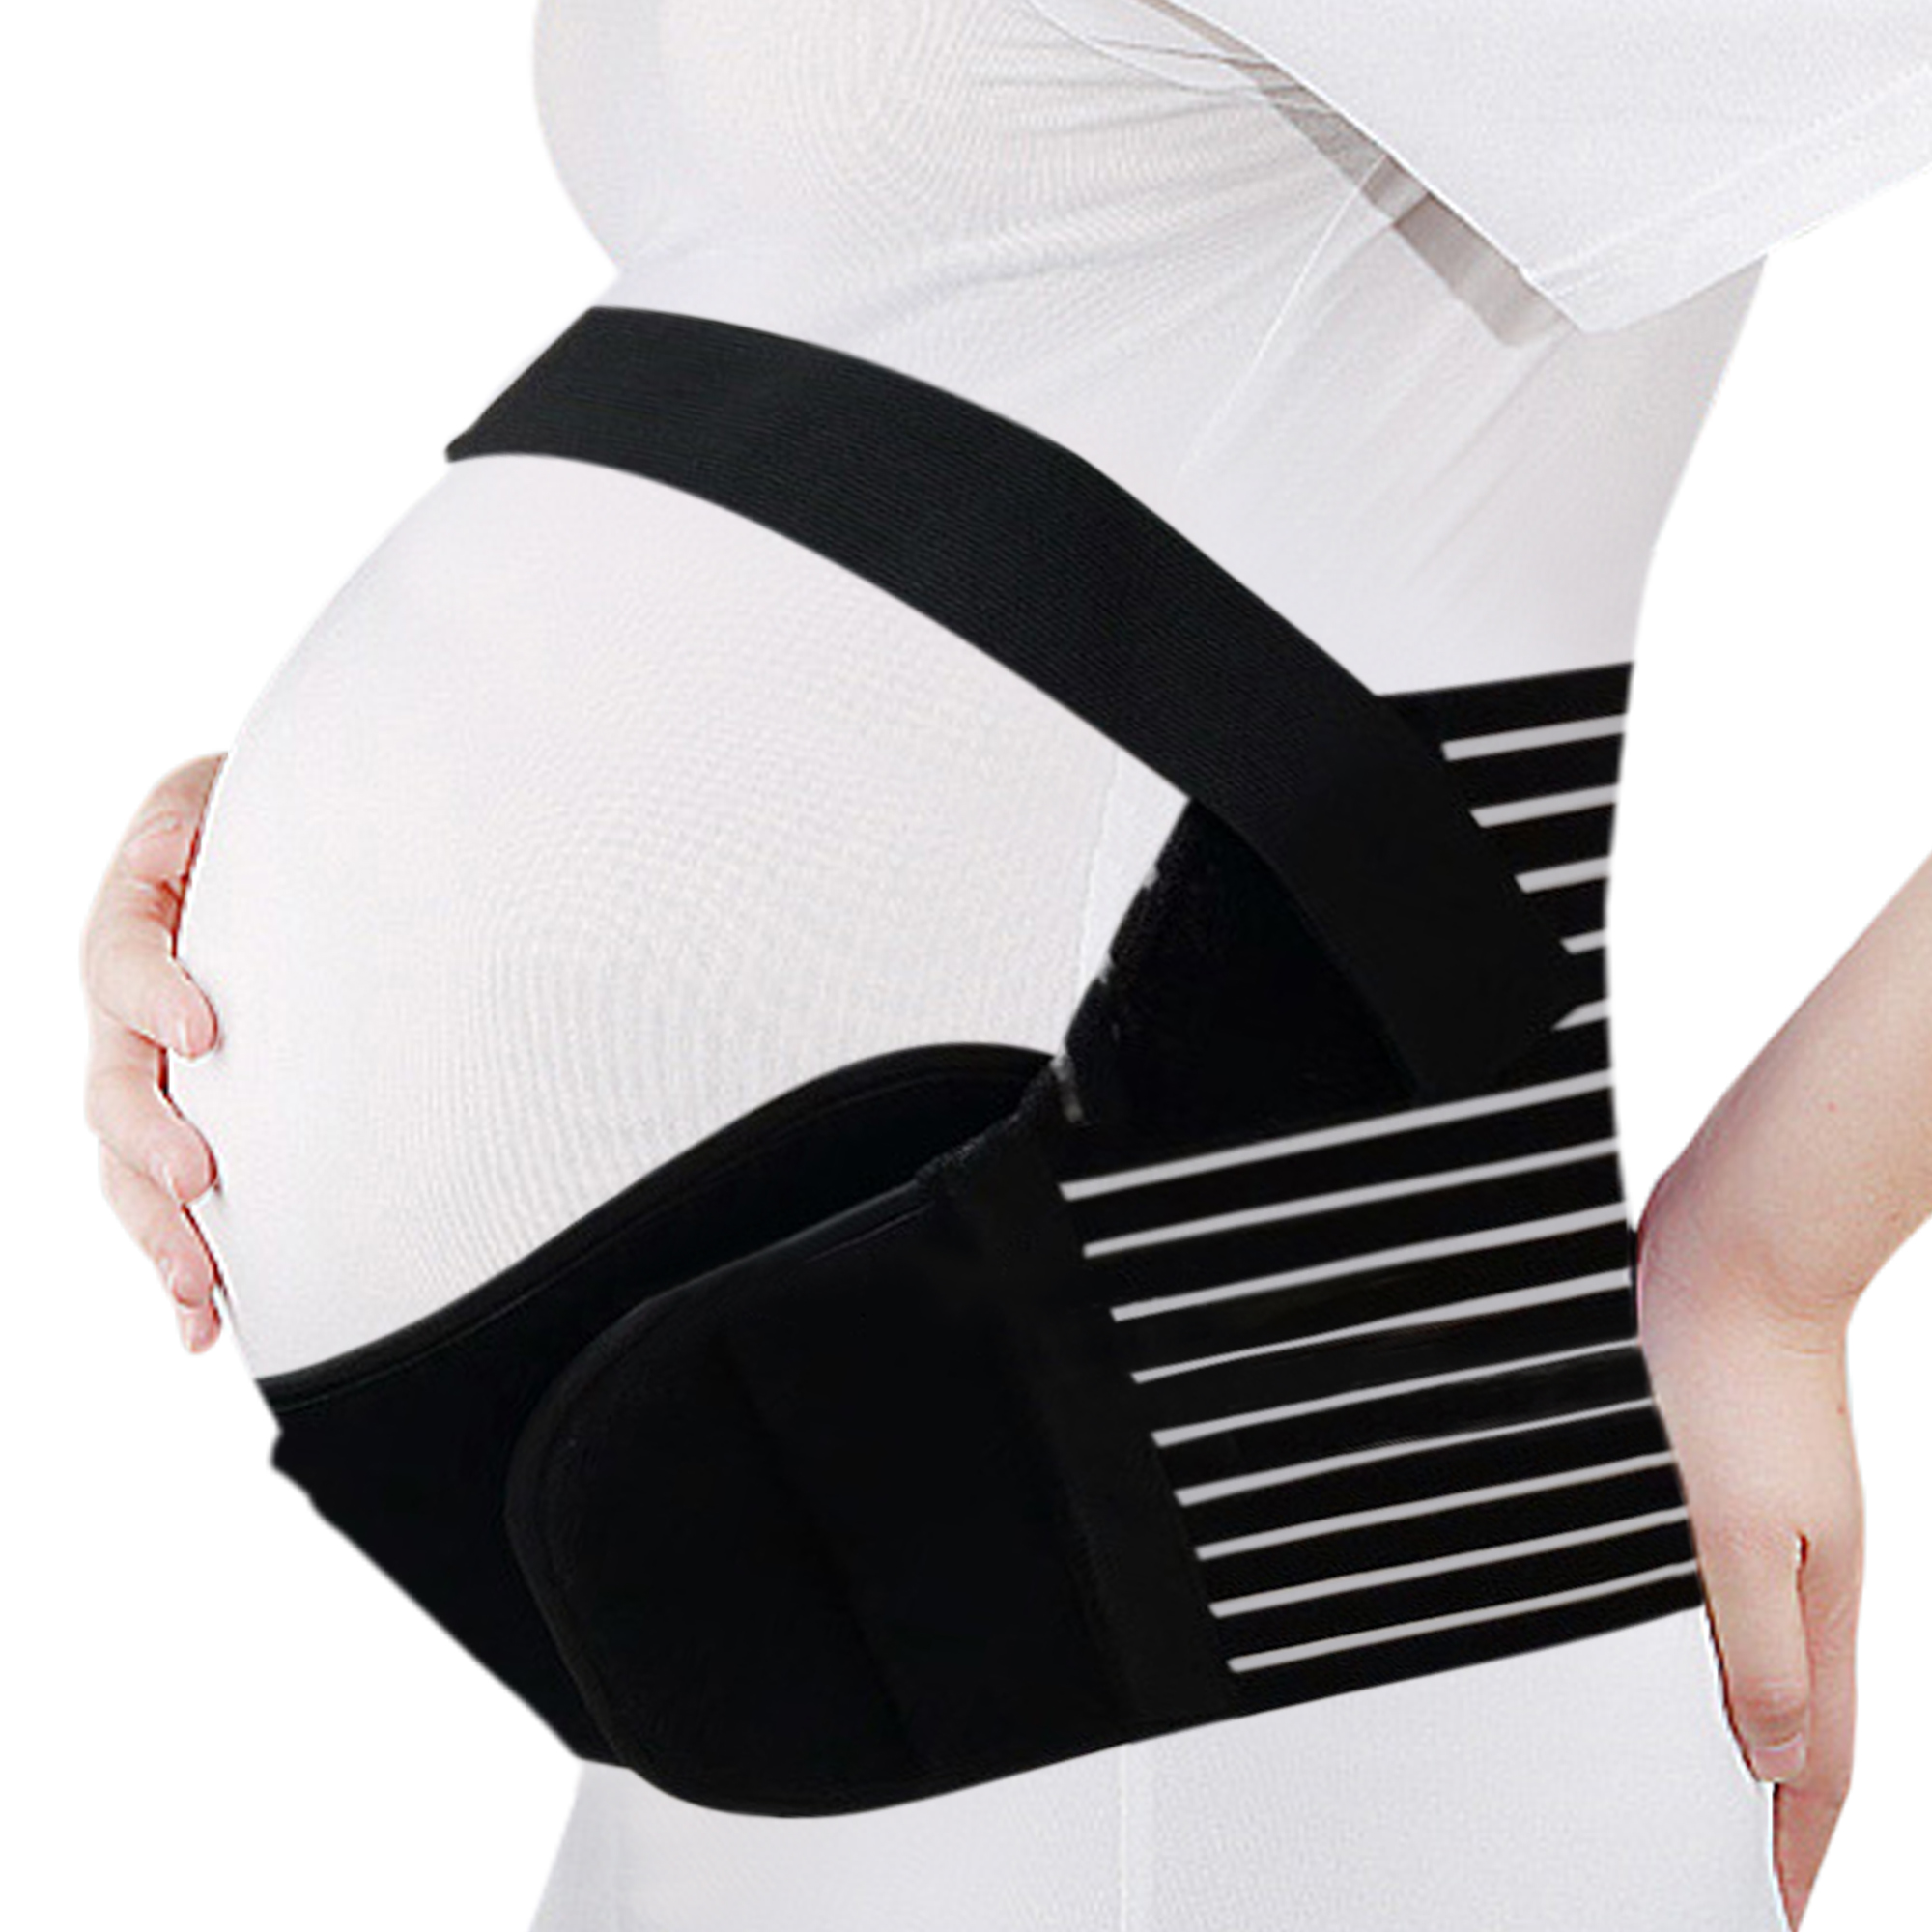 (Black,XL) Maternity Support Belt Pregnancy Belly Band Antepartum Abdominal Back Support